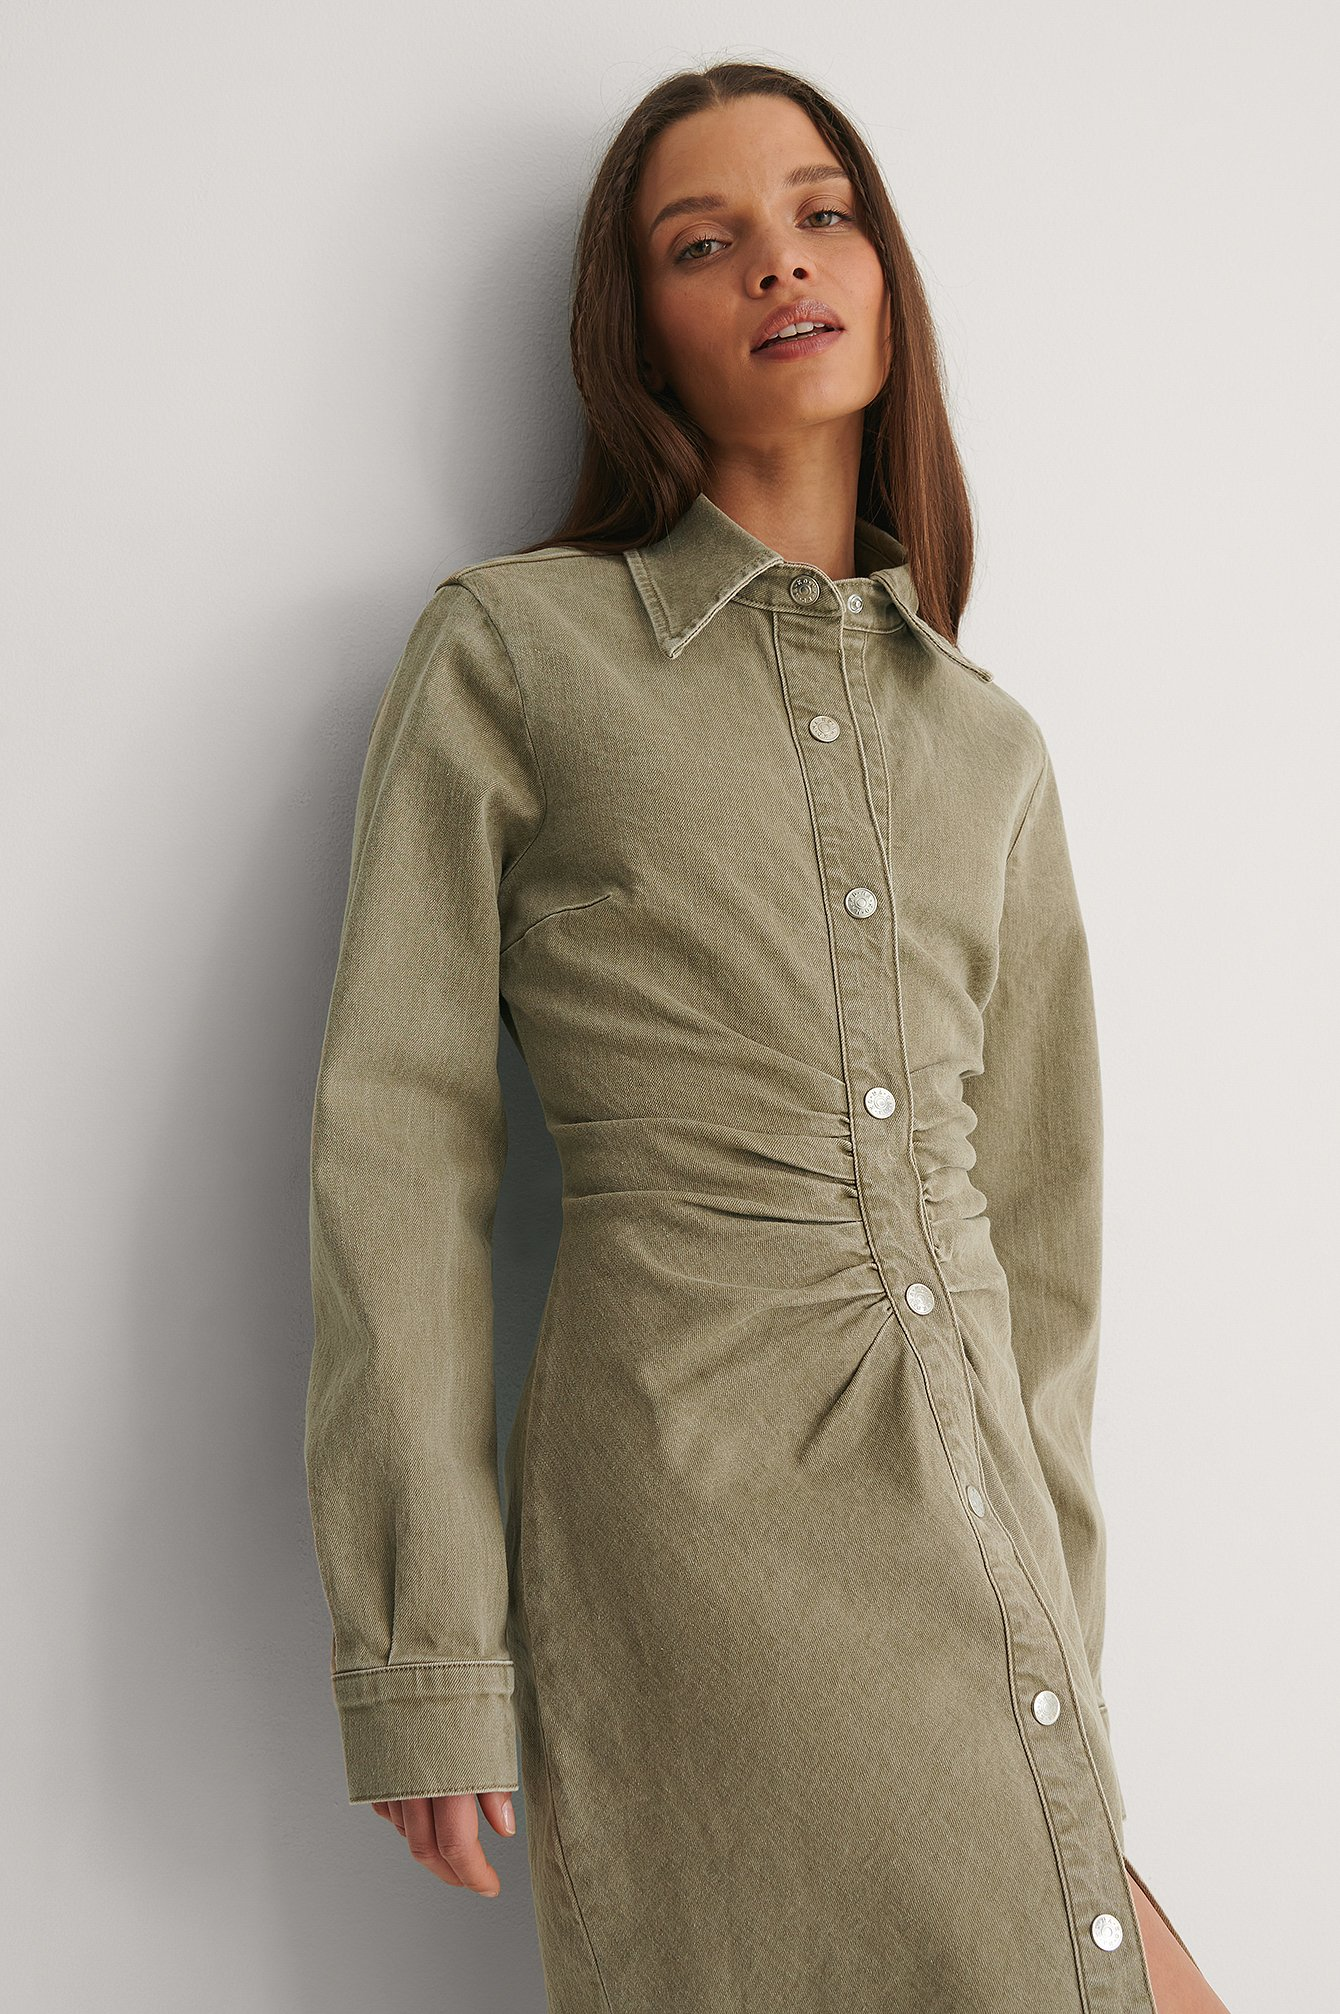 Olive Ruched Colored Denim Midi Dress